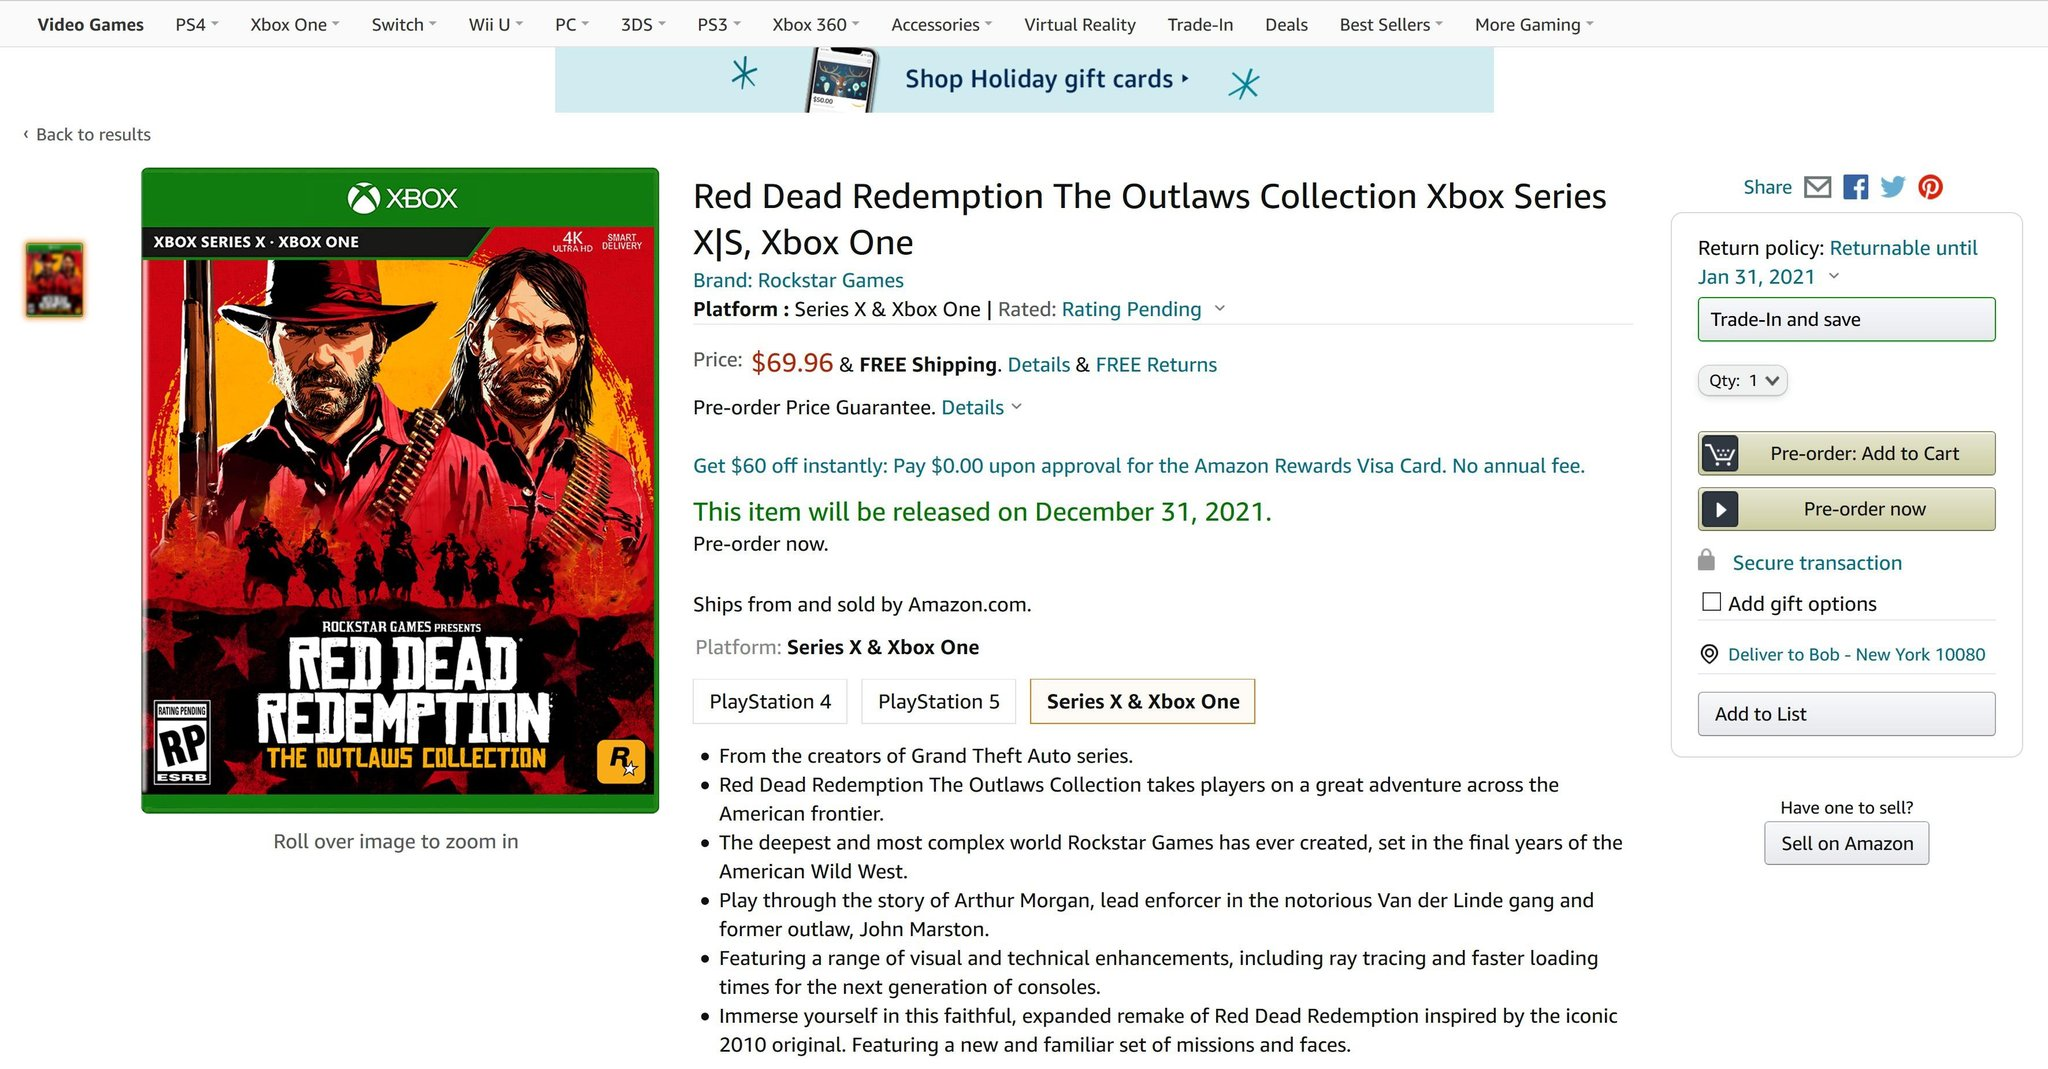 Filtrado Red Dead Redemption: The Outlaws Collection para Xbox Series X|S